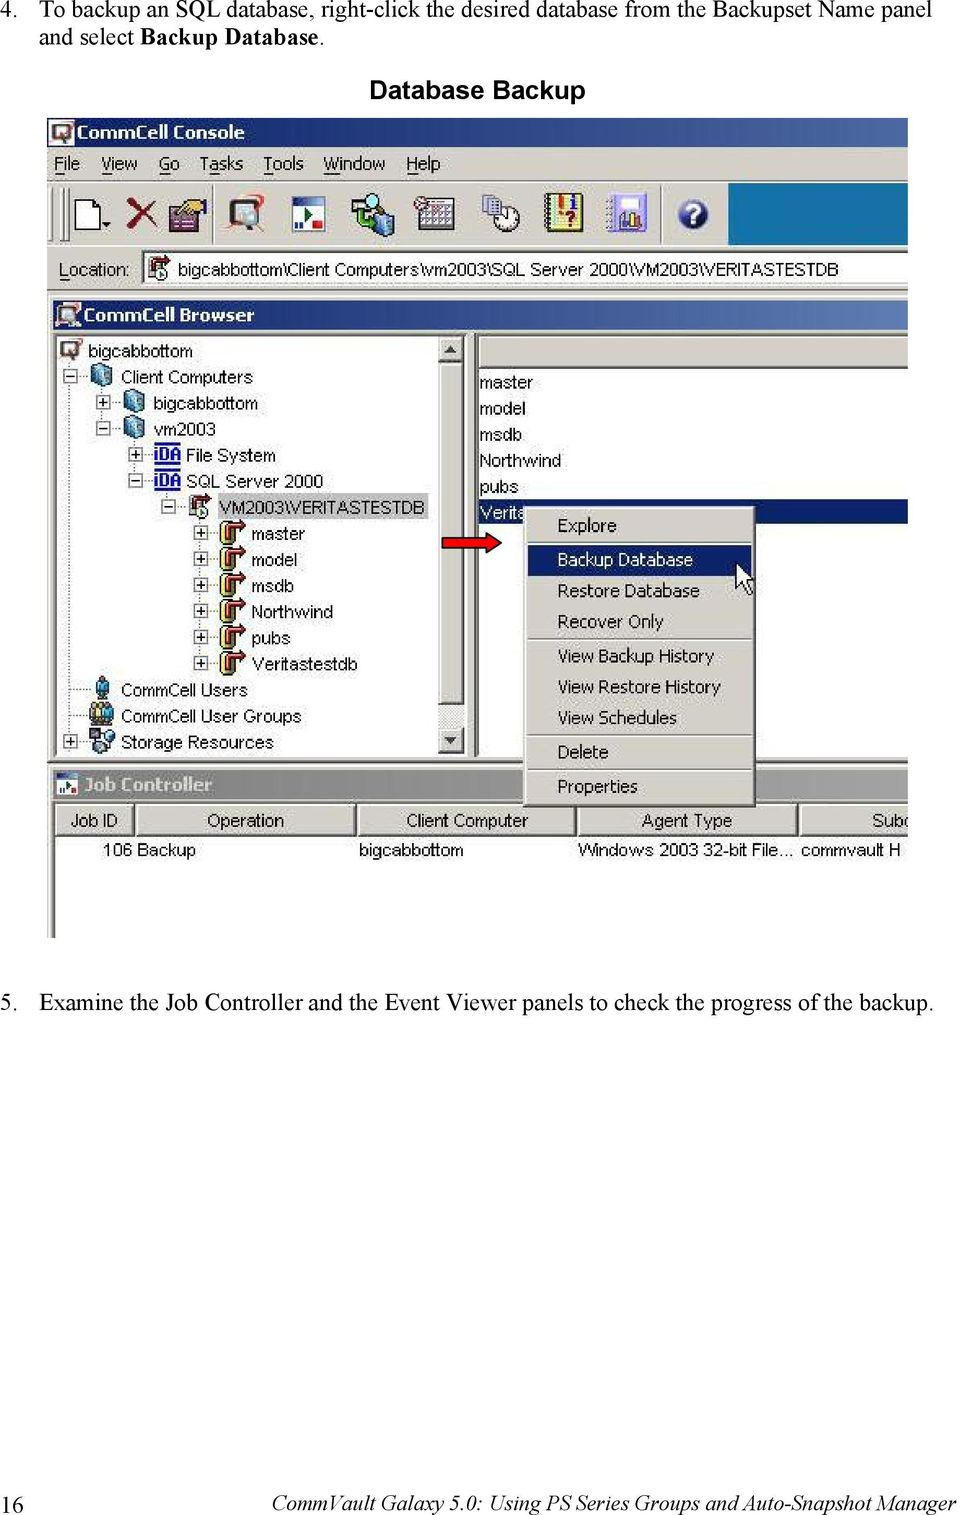 Examine the Job Controller and the Event Viewer panels to check the progress